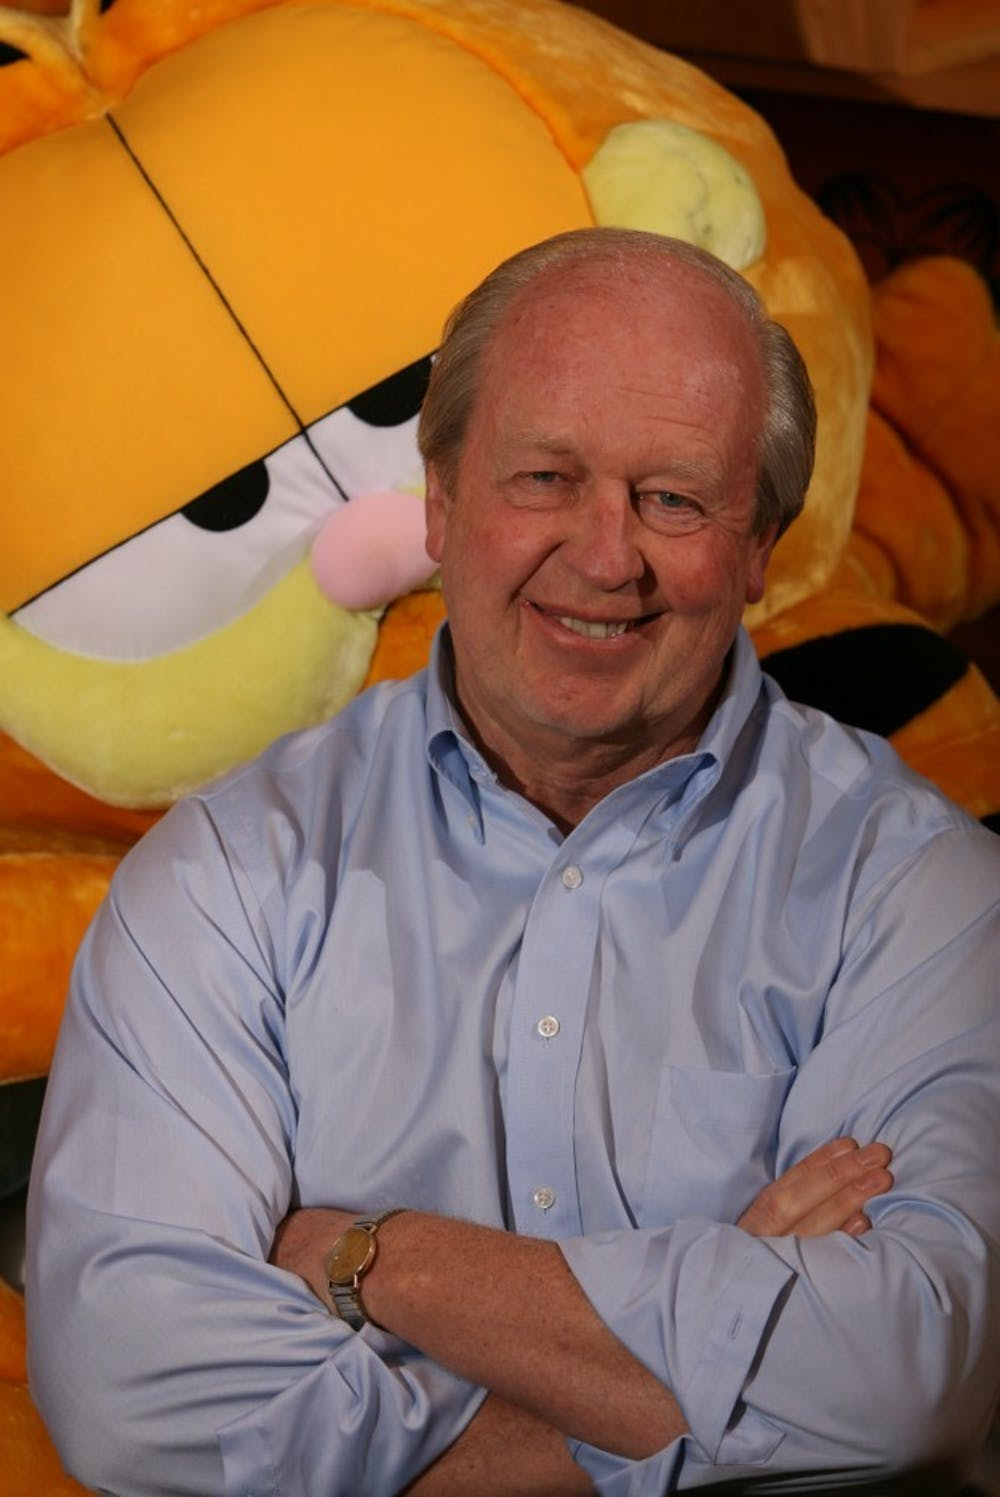 <p>Jim Davis studied art and business at Ball State. After graduating, he created the popular comic strip Garfield, which is now seen in more than 2,100 newspapers nationwide. <strong>Photo Courtesy M Magazine, The Star Press</strong></p>